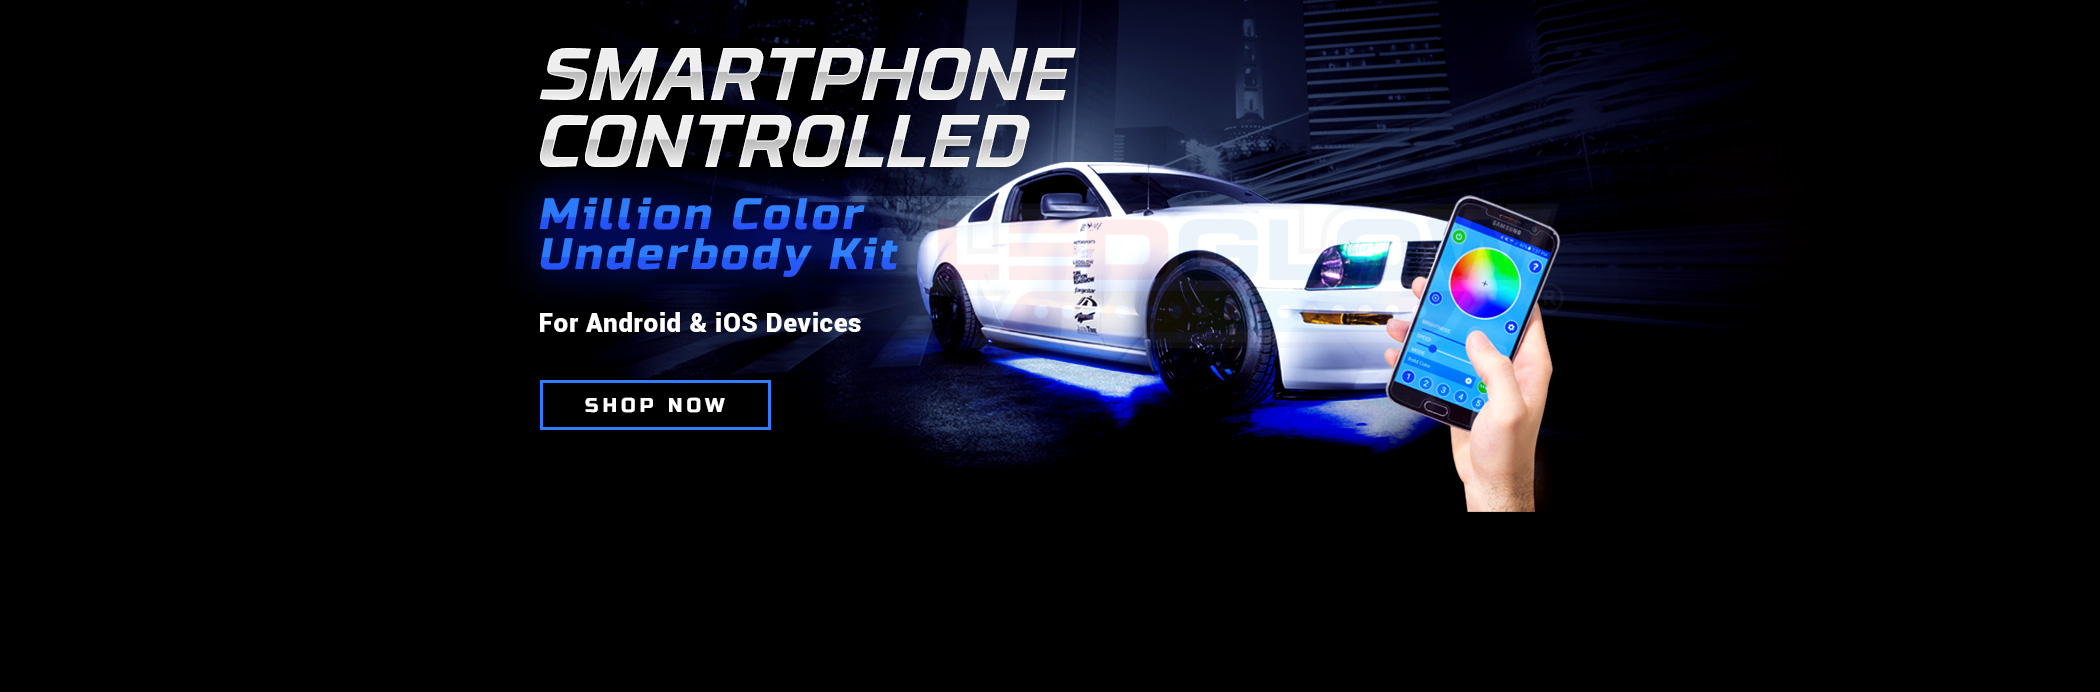 Smartphone Controlled Underbody LED Lights